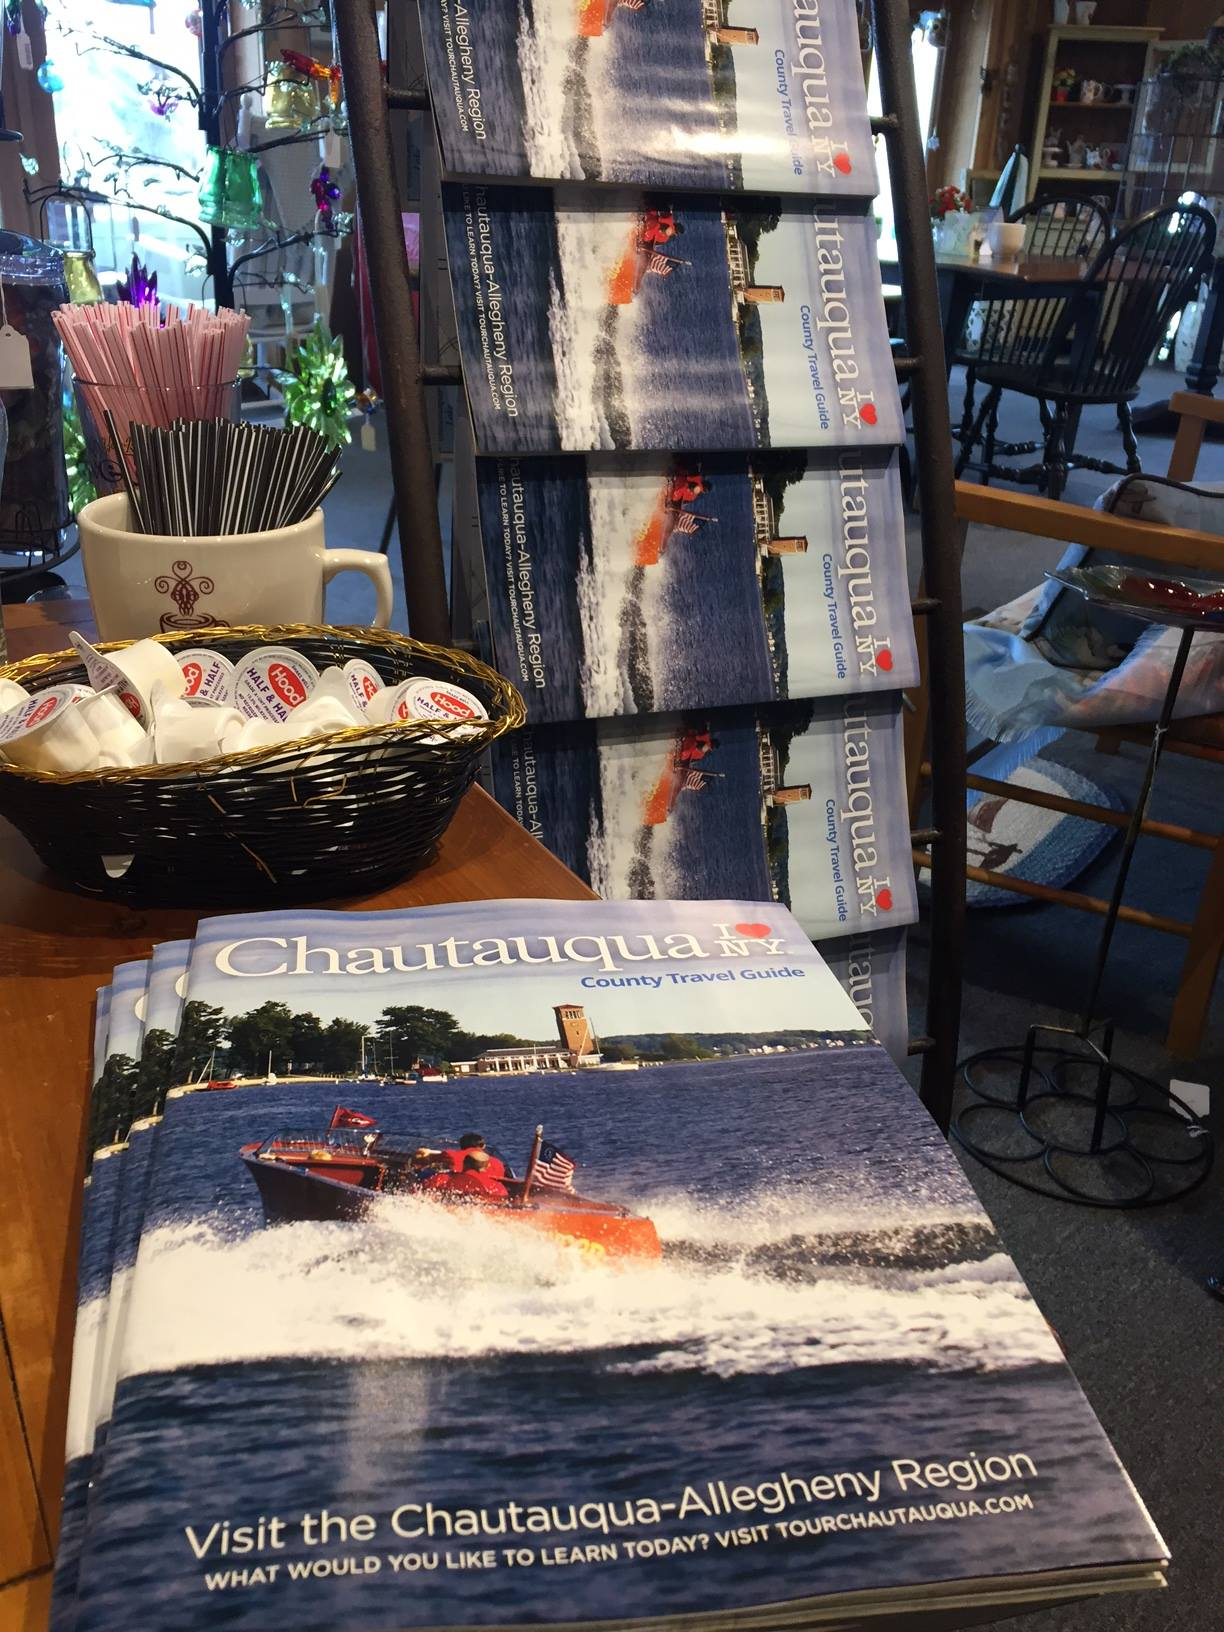 Pick up a printed copy of the  2017 Chautauqua County Travel Guide  and a hot cup of fresh brewed coffee at Webb's Cottage Collection, located directly next door!